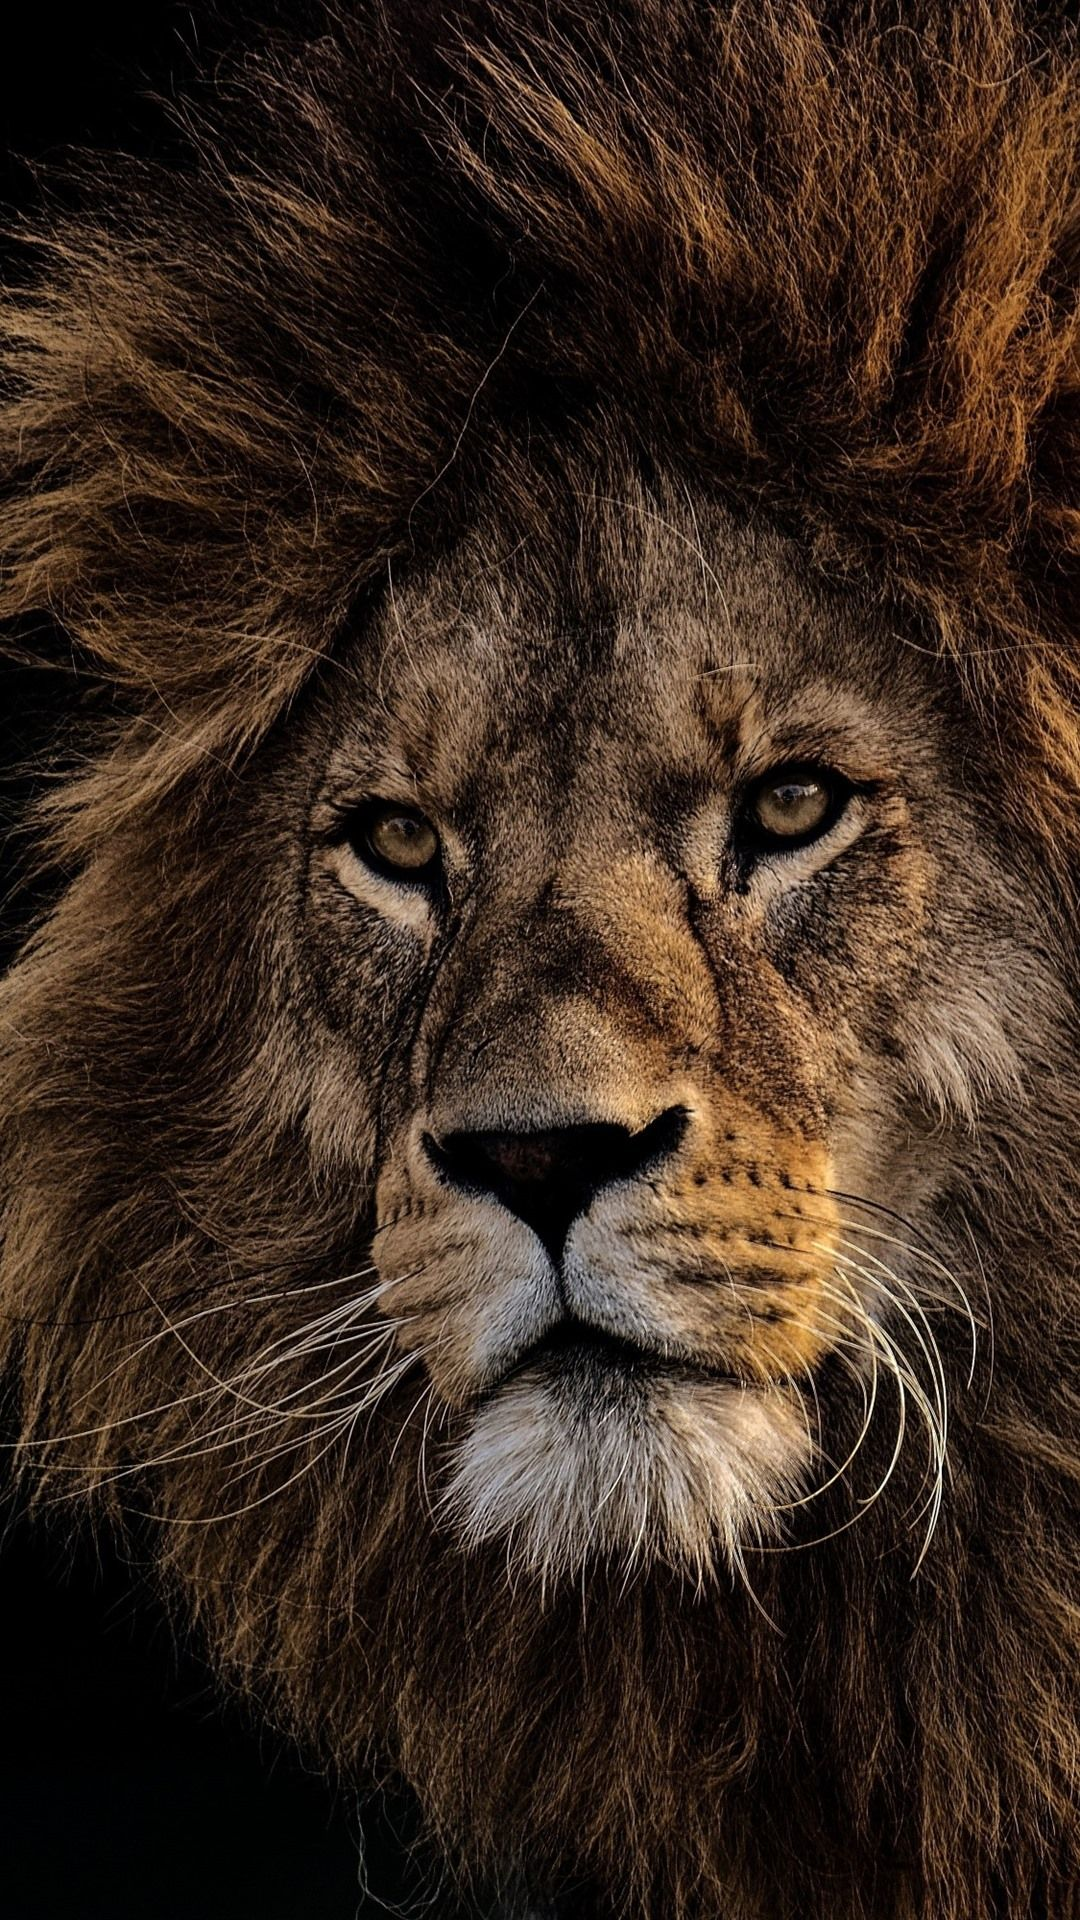 Black Lion Wallpapers Background Hupages Download Iphone Wallpapers Lion Wallpaper Lion Pictures Lion Photography